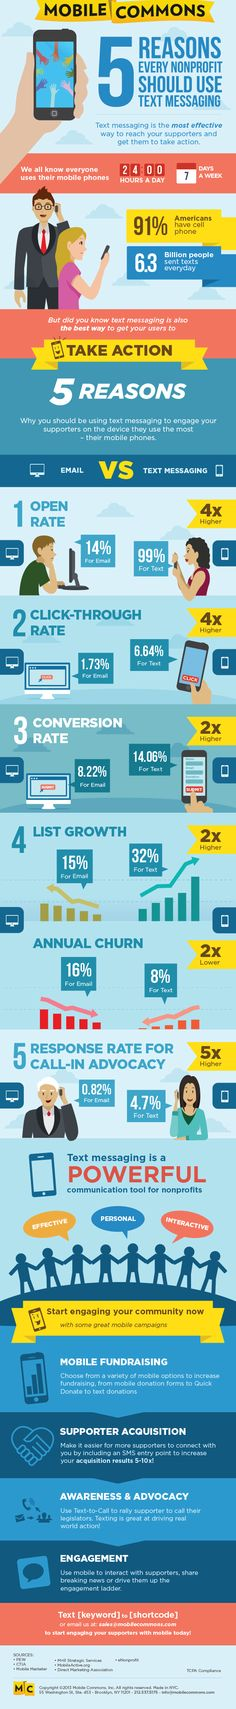 5 Reasons Every Nonprofit Should Use Text Messaging #Infographic #NonProfit #TextMessaging